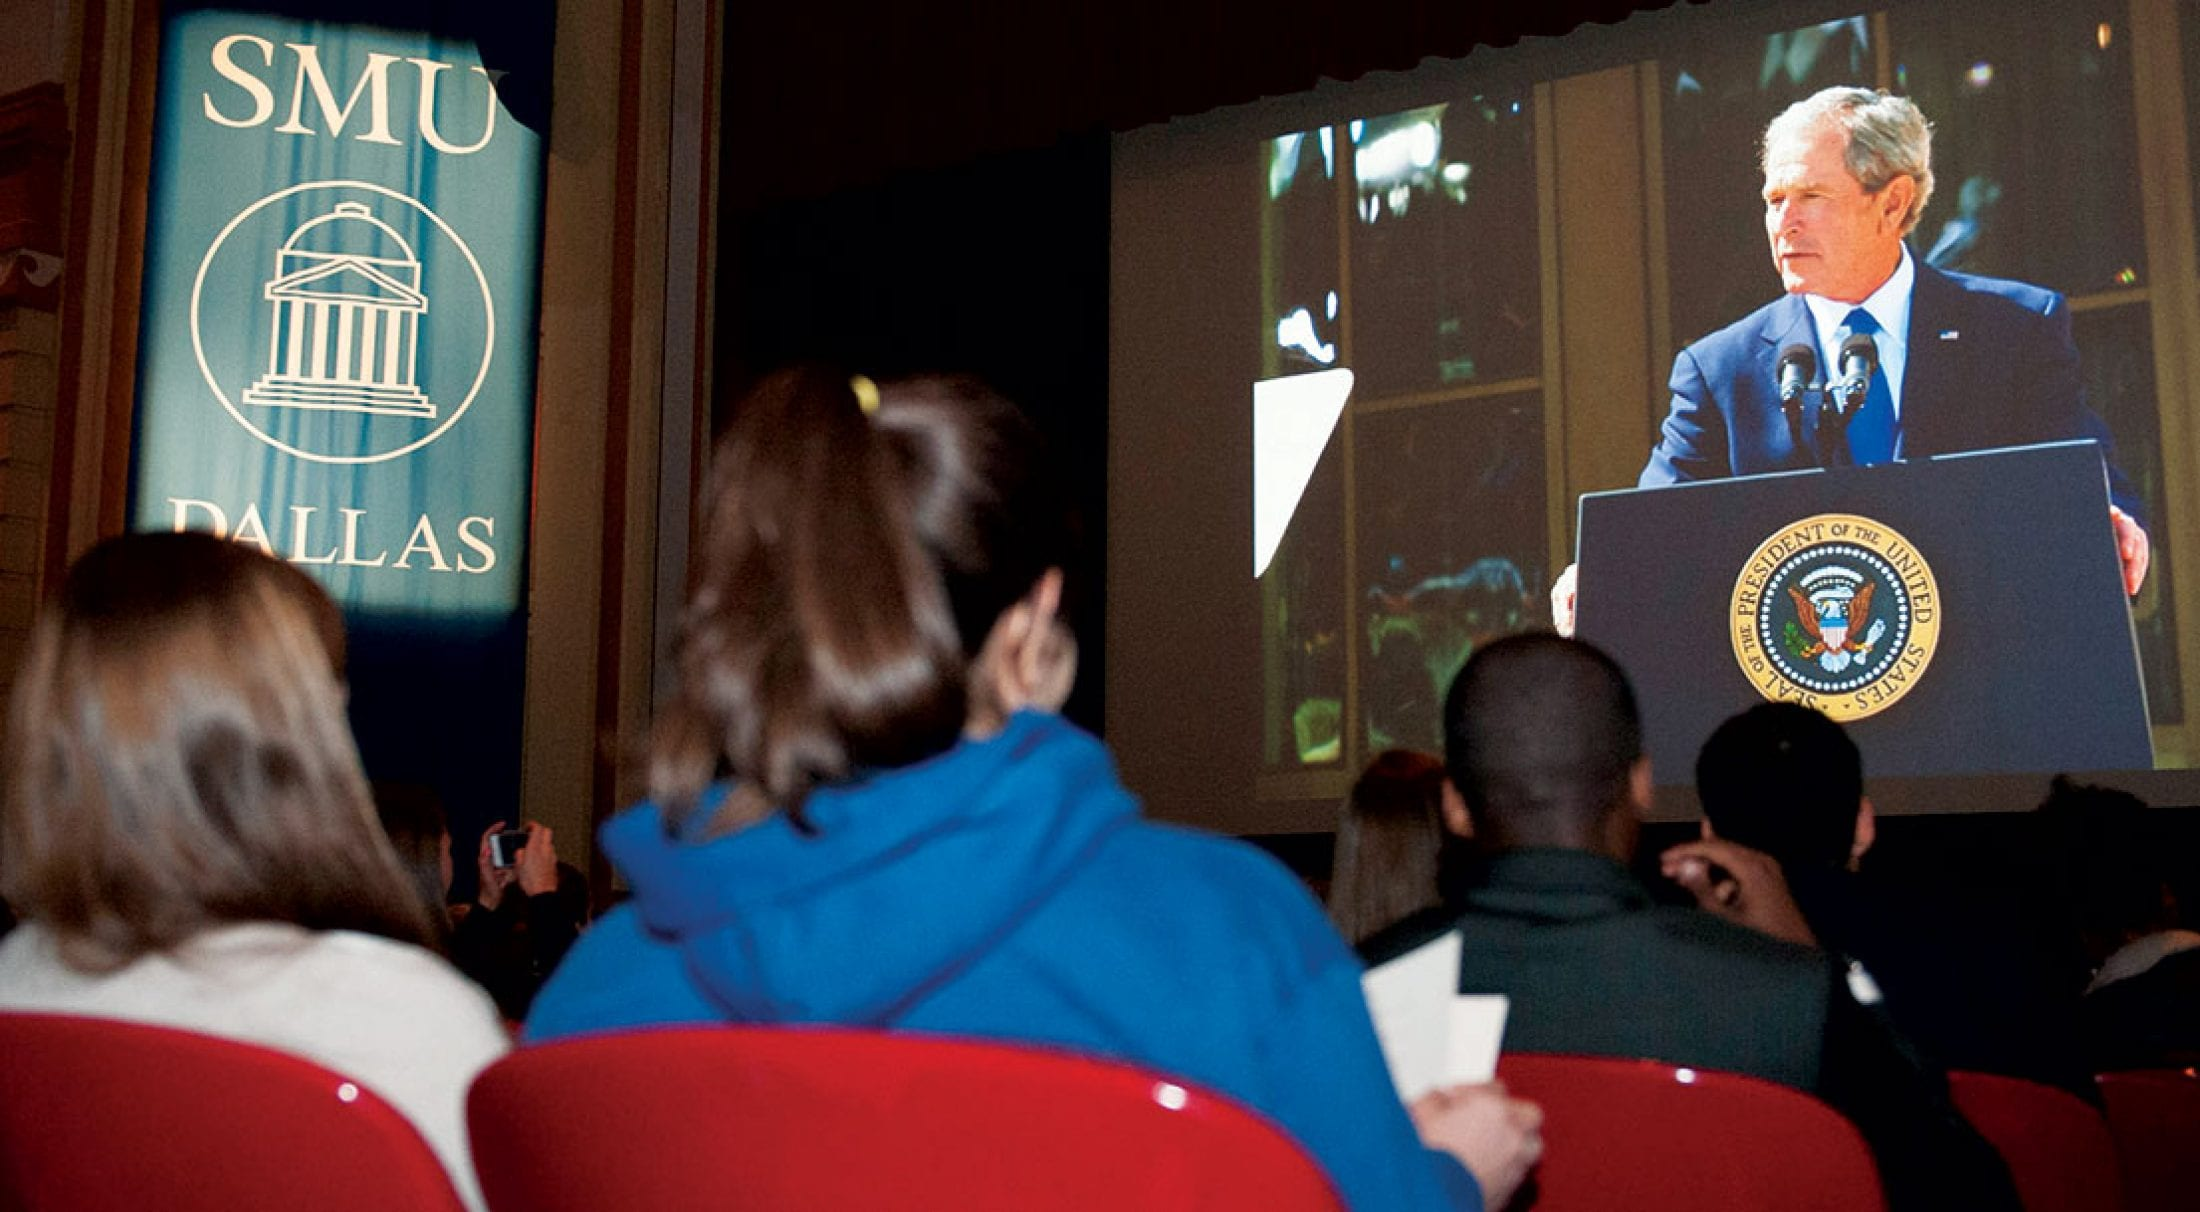 The Bush Presidential Center is a unique academic asset for SMU students.